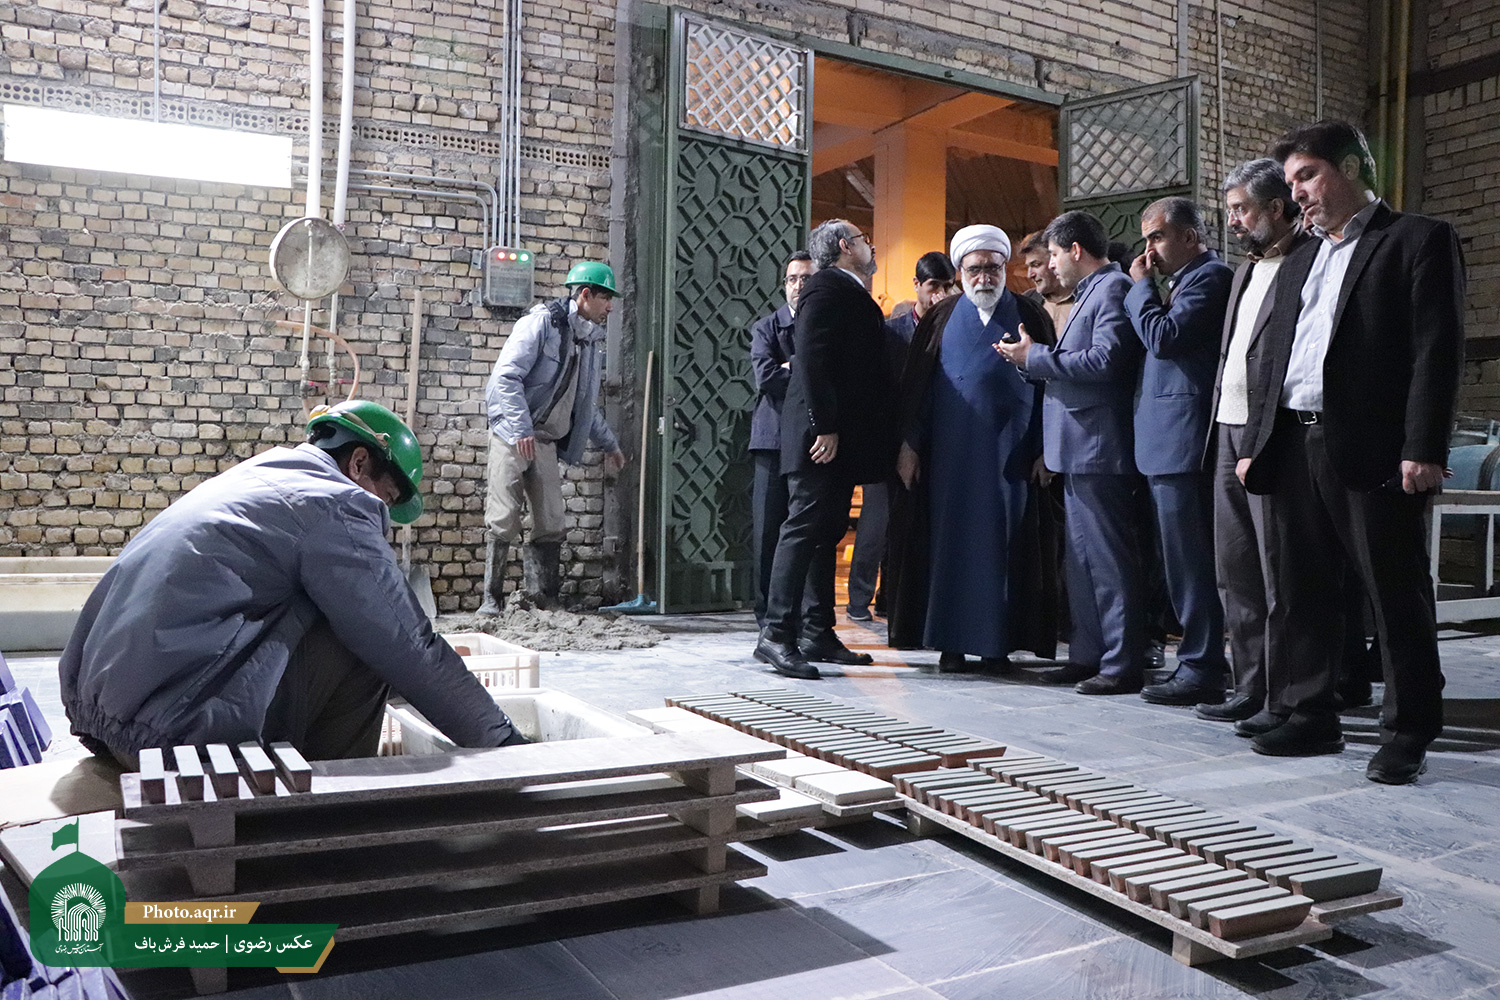 AQR chief custodian visits civil projects of the holy shrine